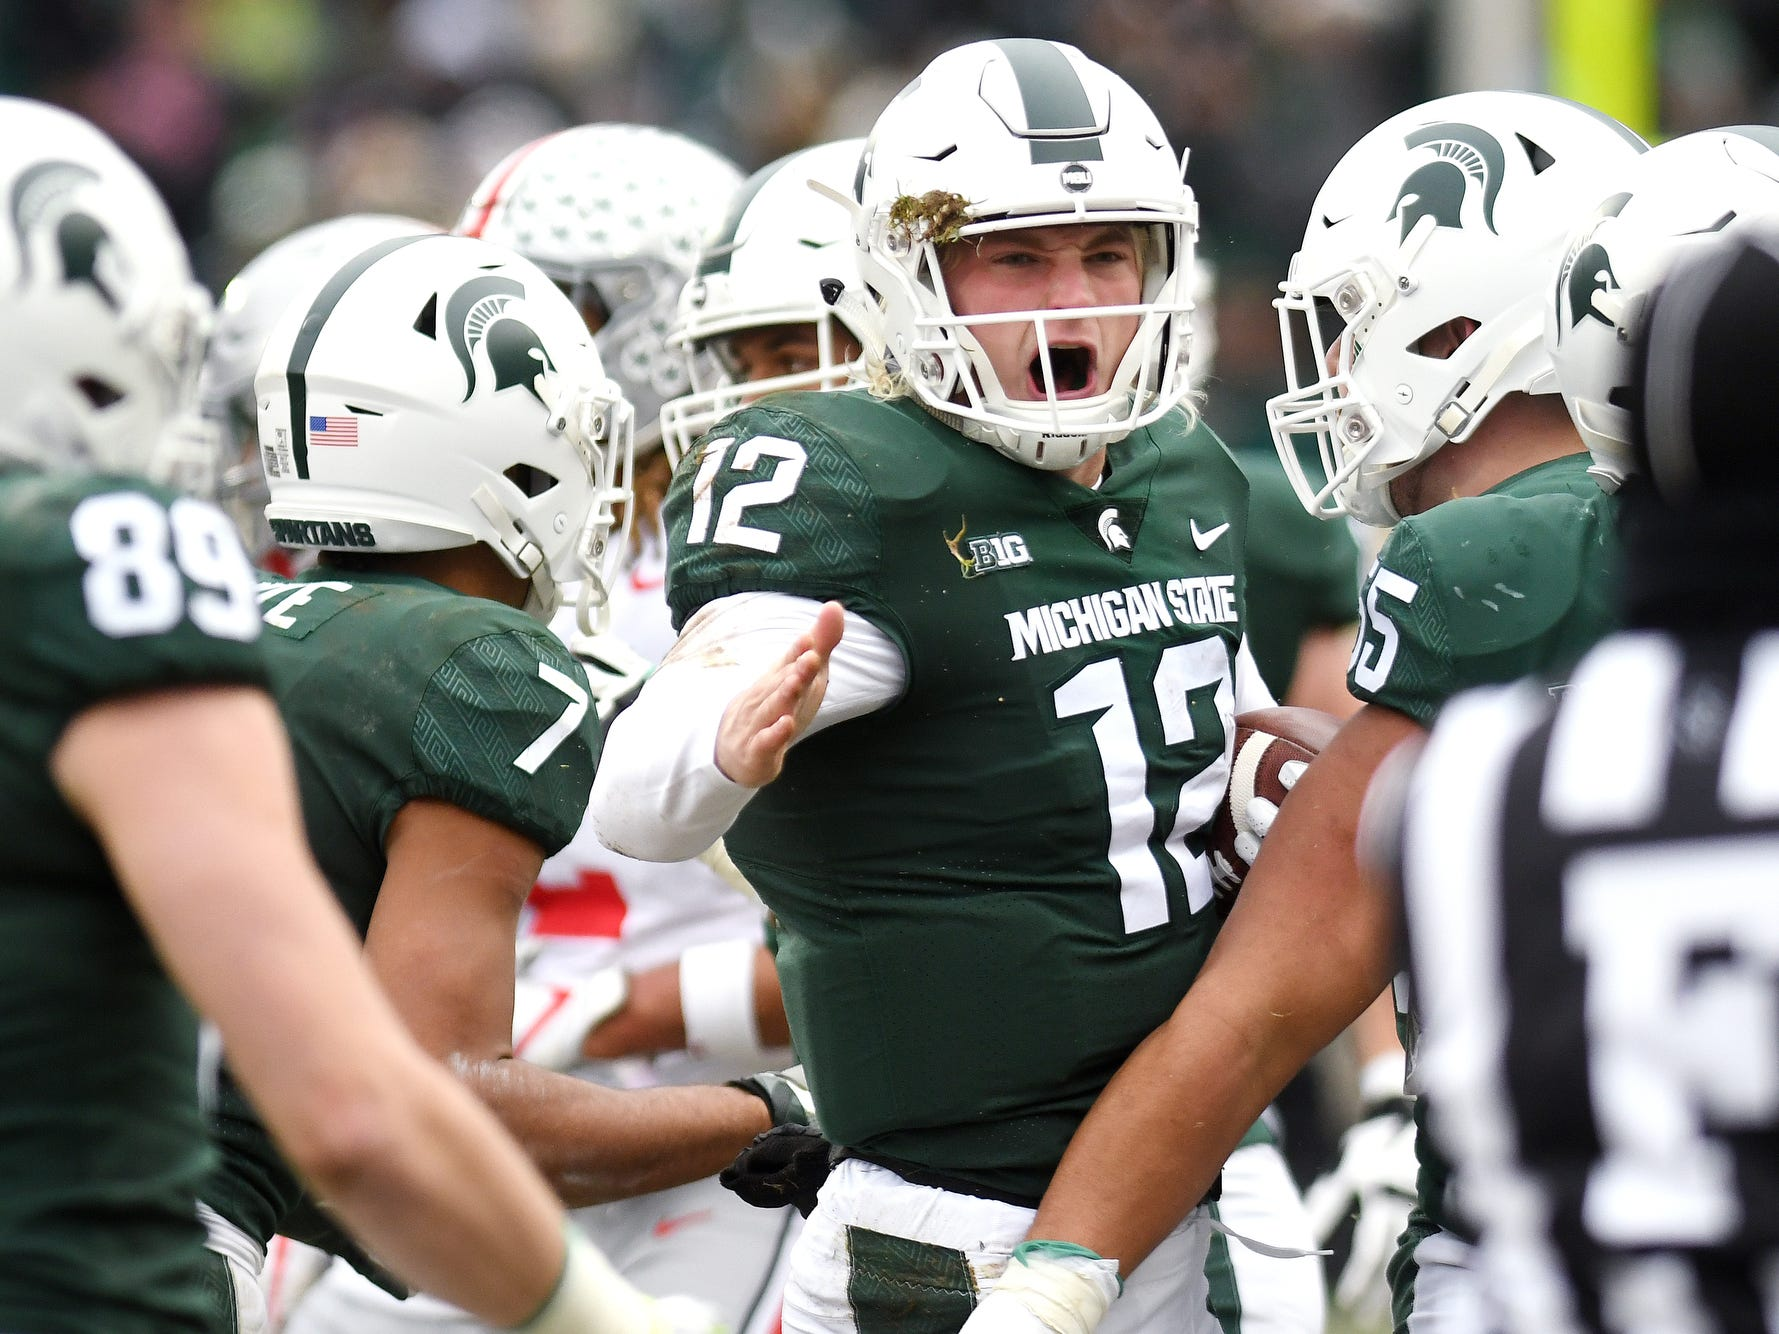 Michigan State's Rocky Lombardi celebrates after a long run for a first down during the third quarter on Saturday, Nov. 10, 2018, in East Lansing.